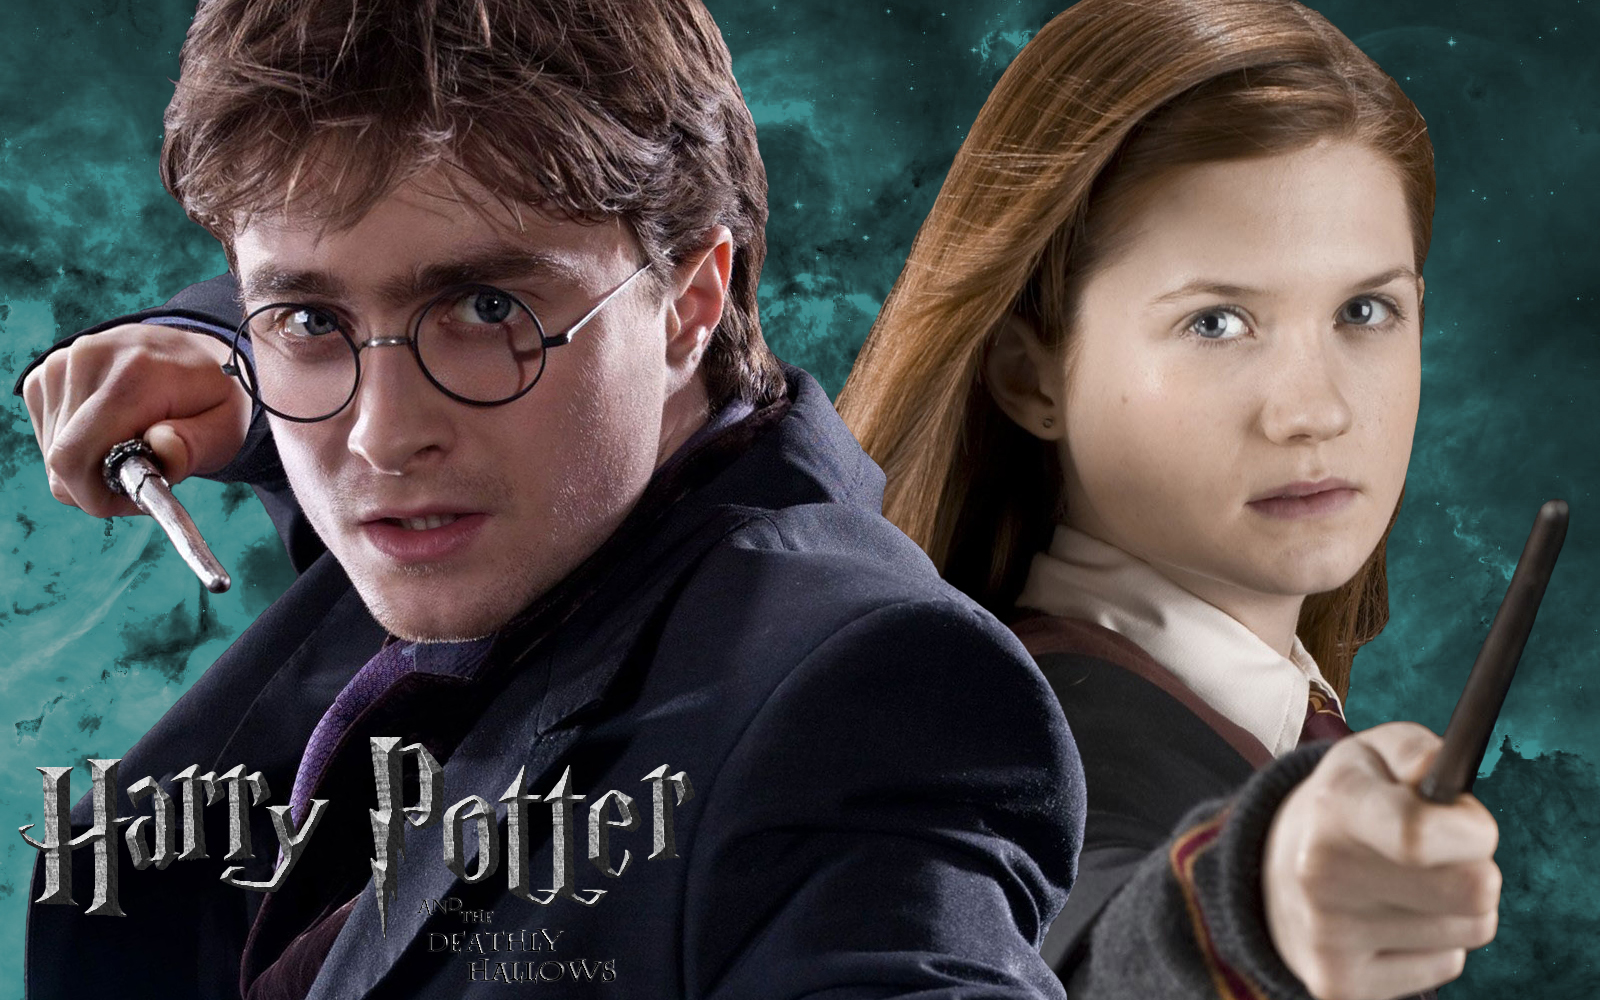 Harry Potter images Harry & Ginny - Ready to duel HD ...  Harry Potter im...